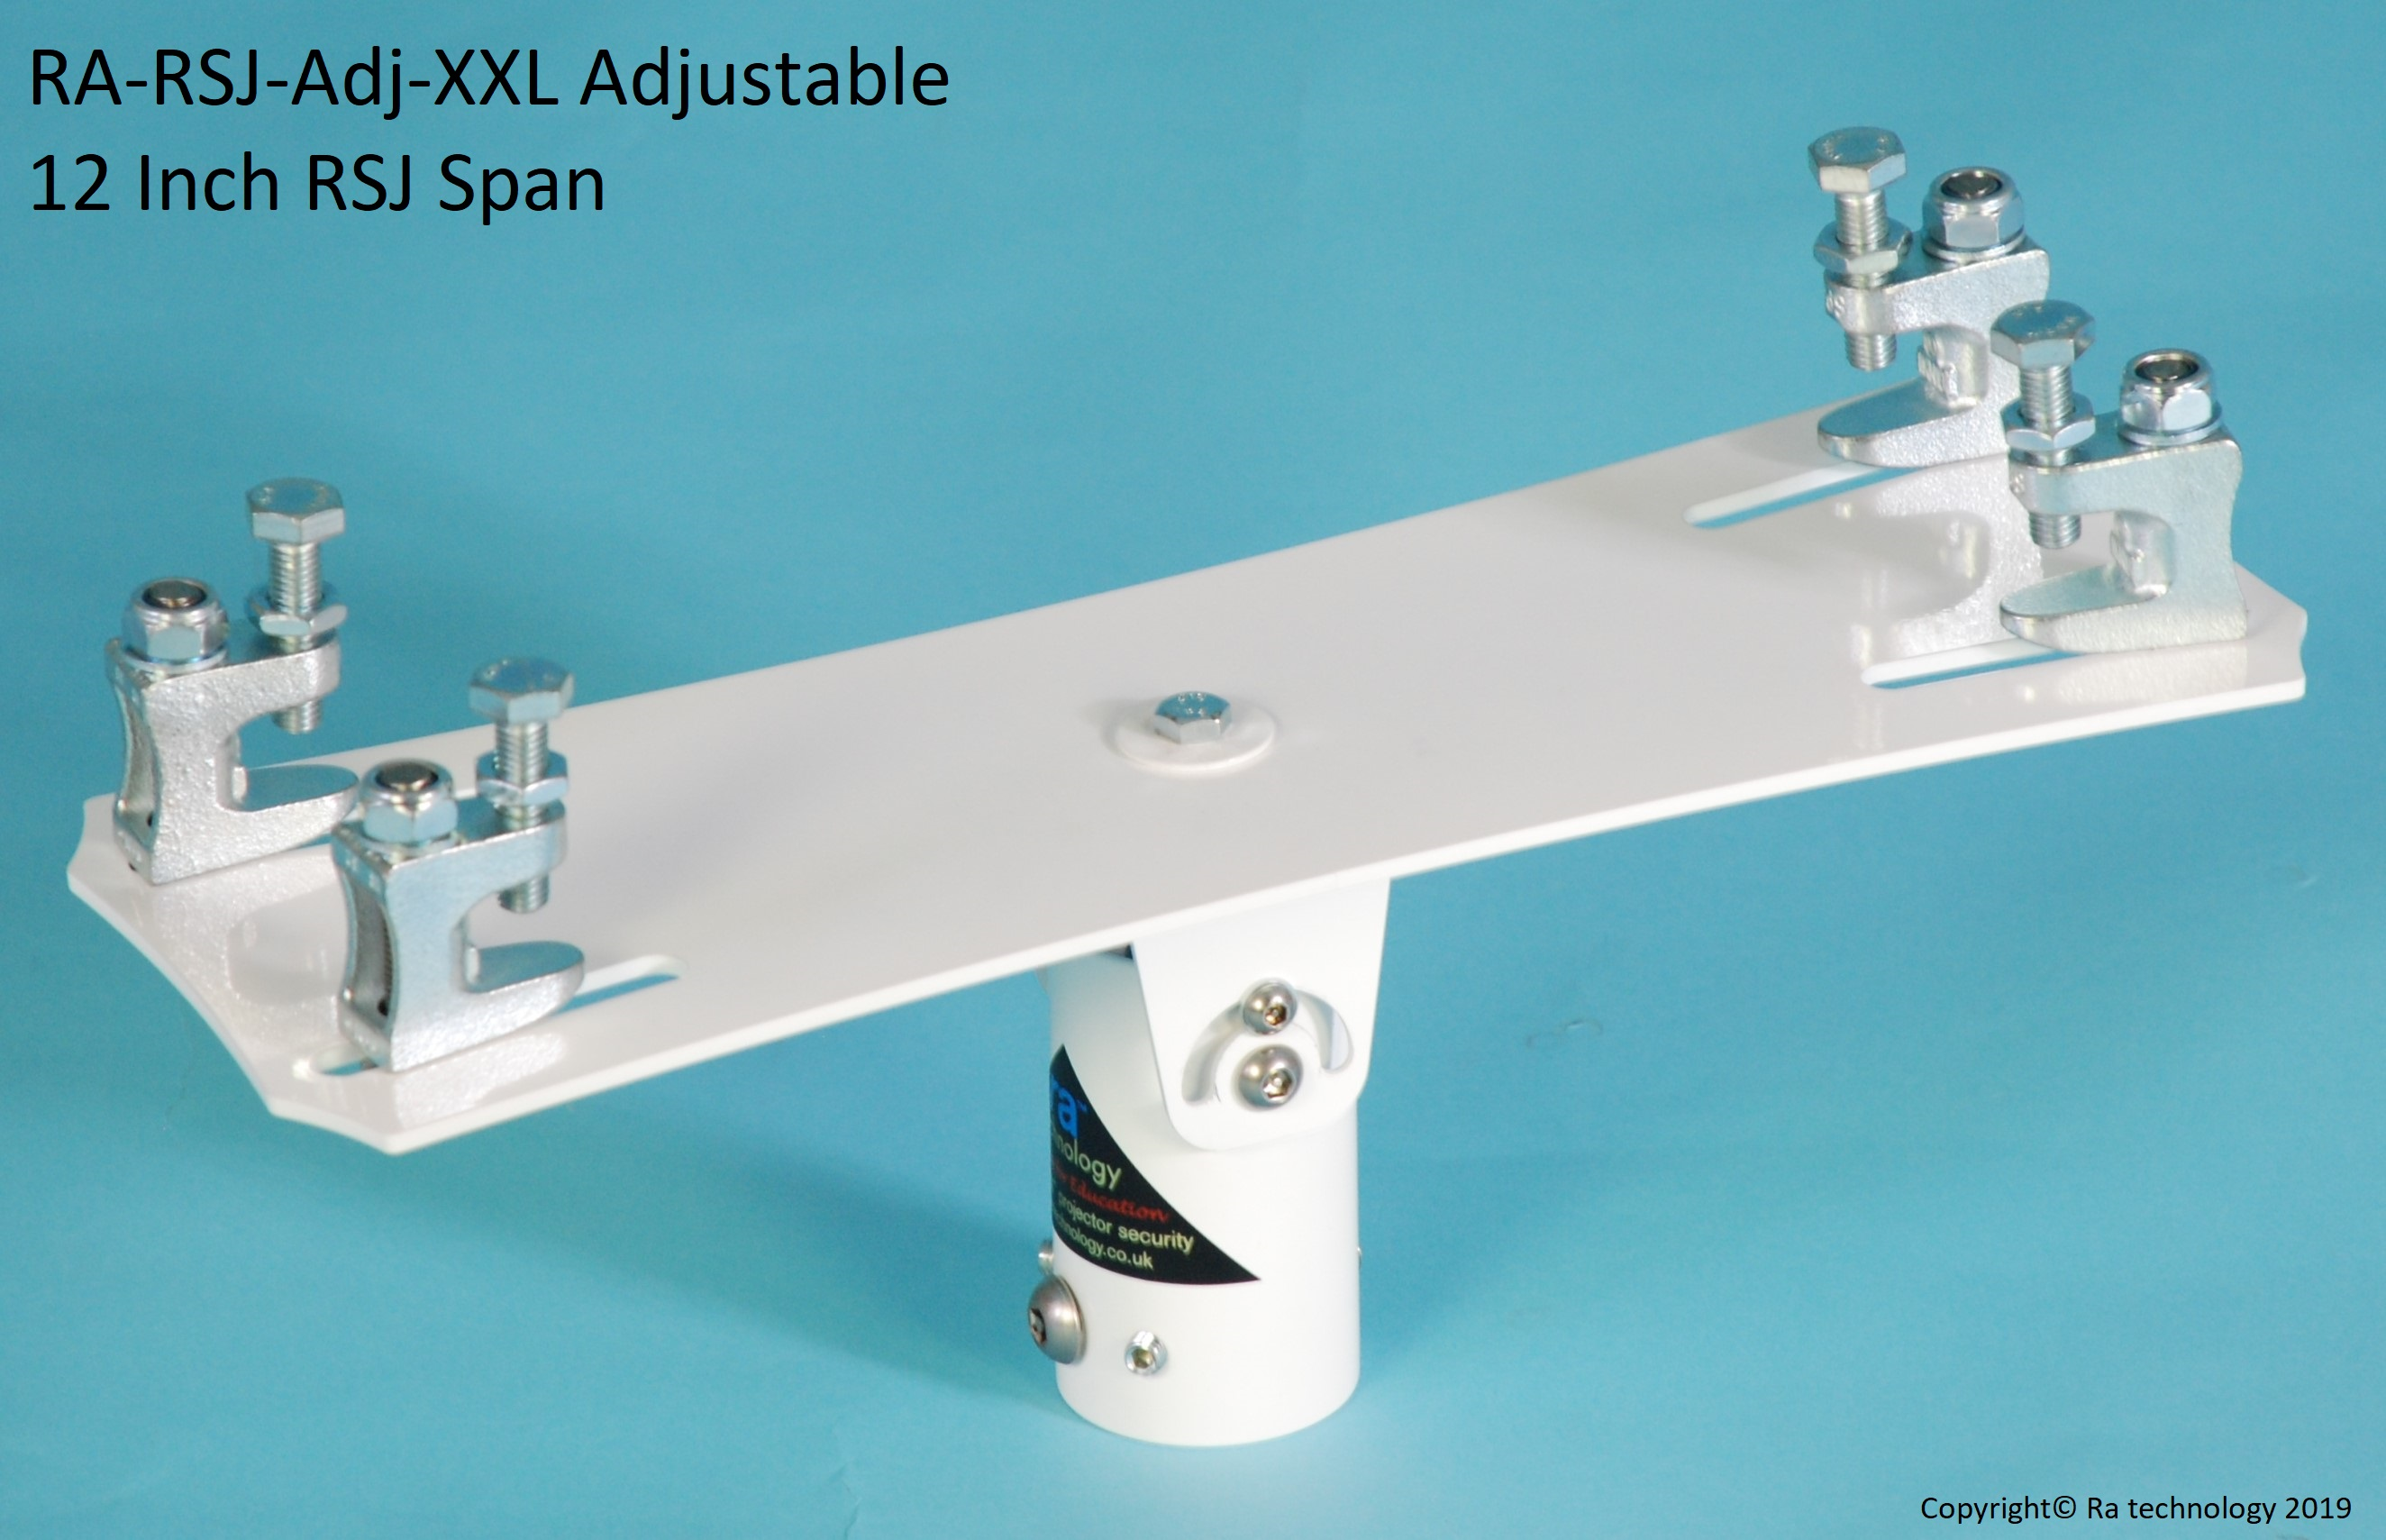 RA-RSJ-Adj-XXL With Adjustable 50mm Sleeve. 13 Inch RSJ Span